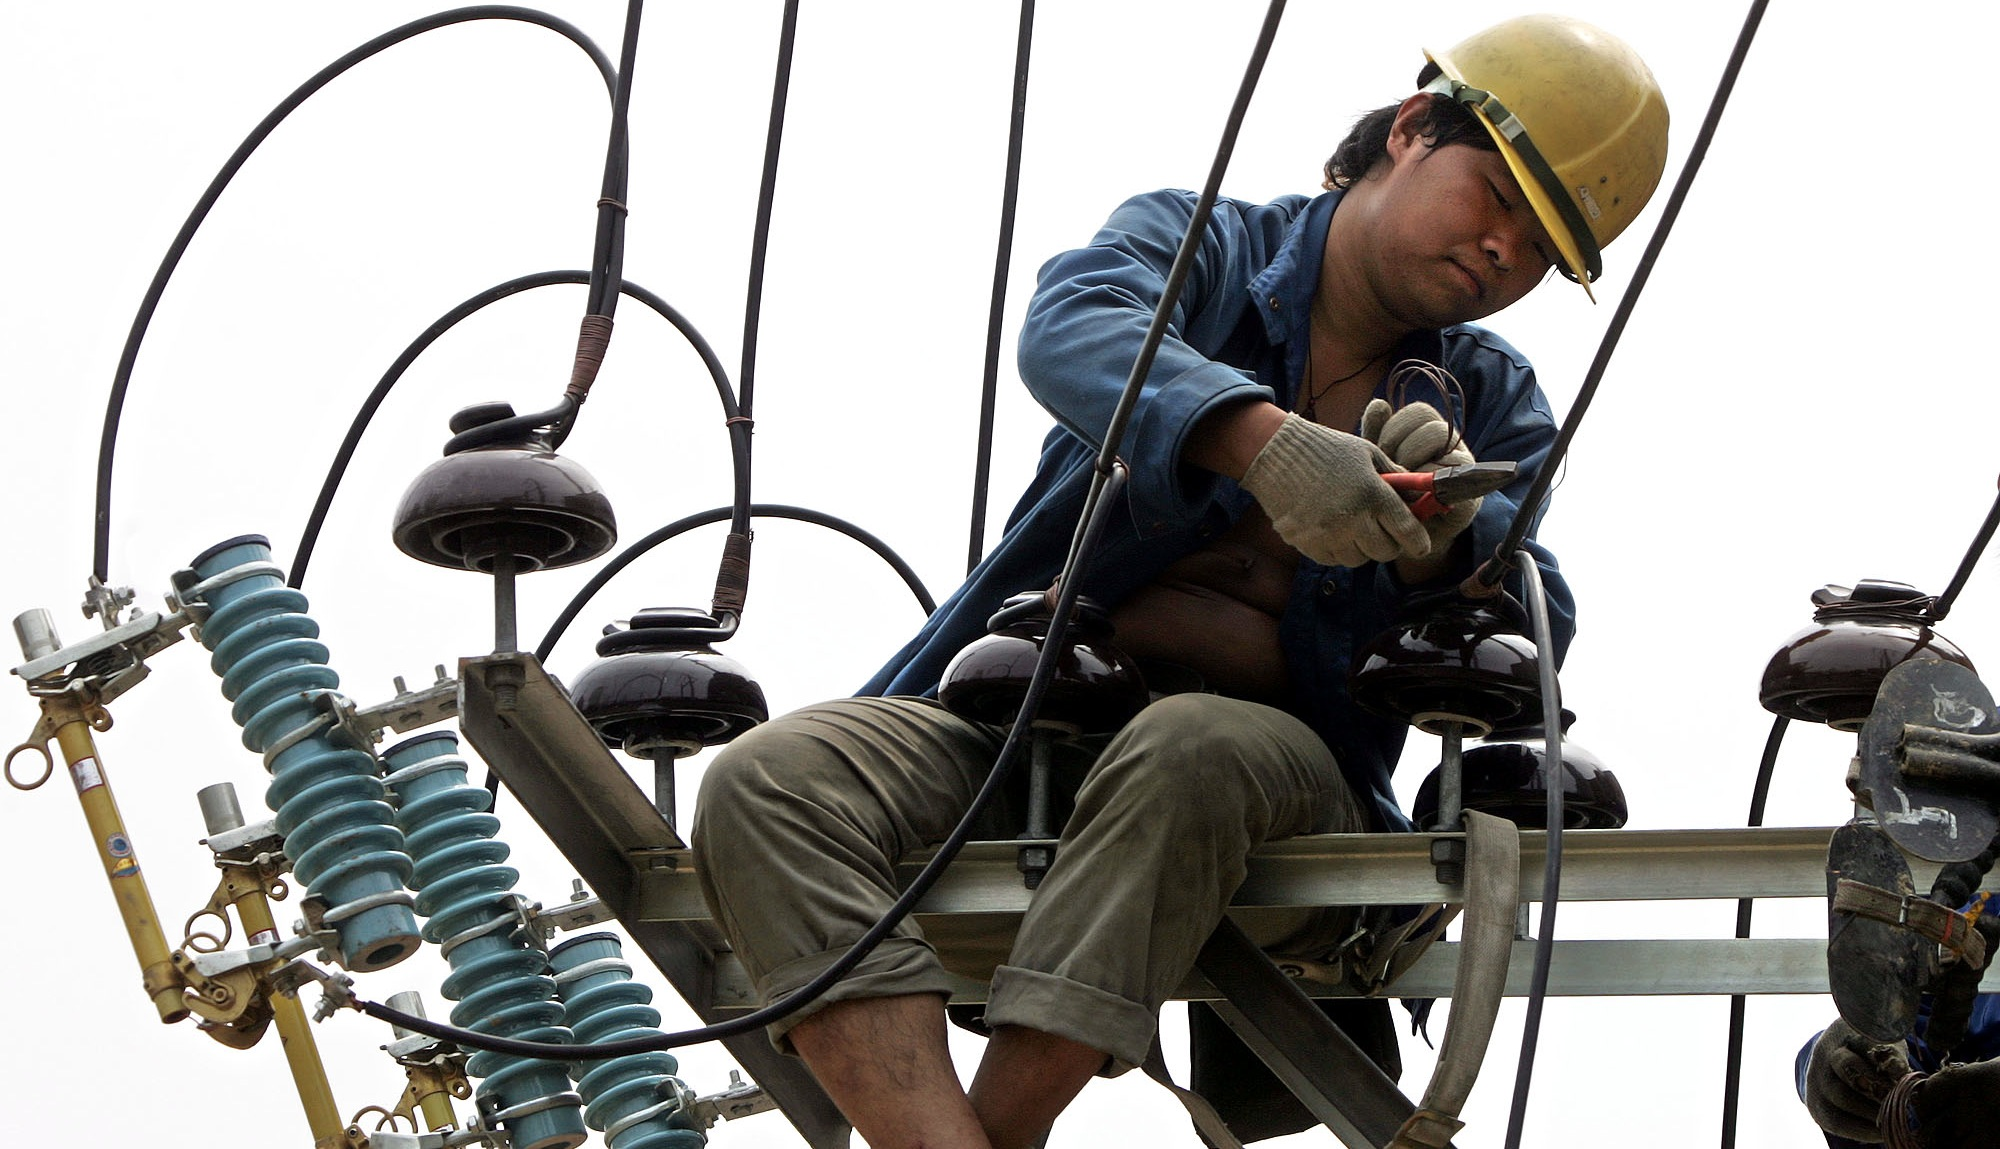 A Chinese power line worker perched on a electricity pole as he performs maintenance work in Beijing, China, Monday, July 18, 2005. The government said last month that power use in Beijing, Shanghai and other major cities has set new records and warned that portions of the country could face blackouts.   Officials said earlier that power demand this summer could exceed China's generating capacity by up to 5 percent as a booming economy and the seasonal heat waves push up energy use. (AP Photo/Ng Han Guan)